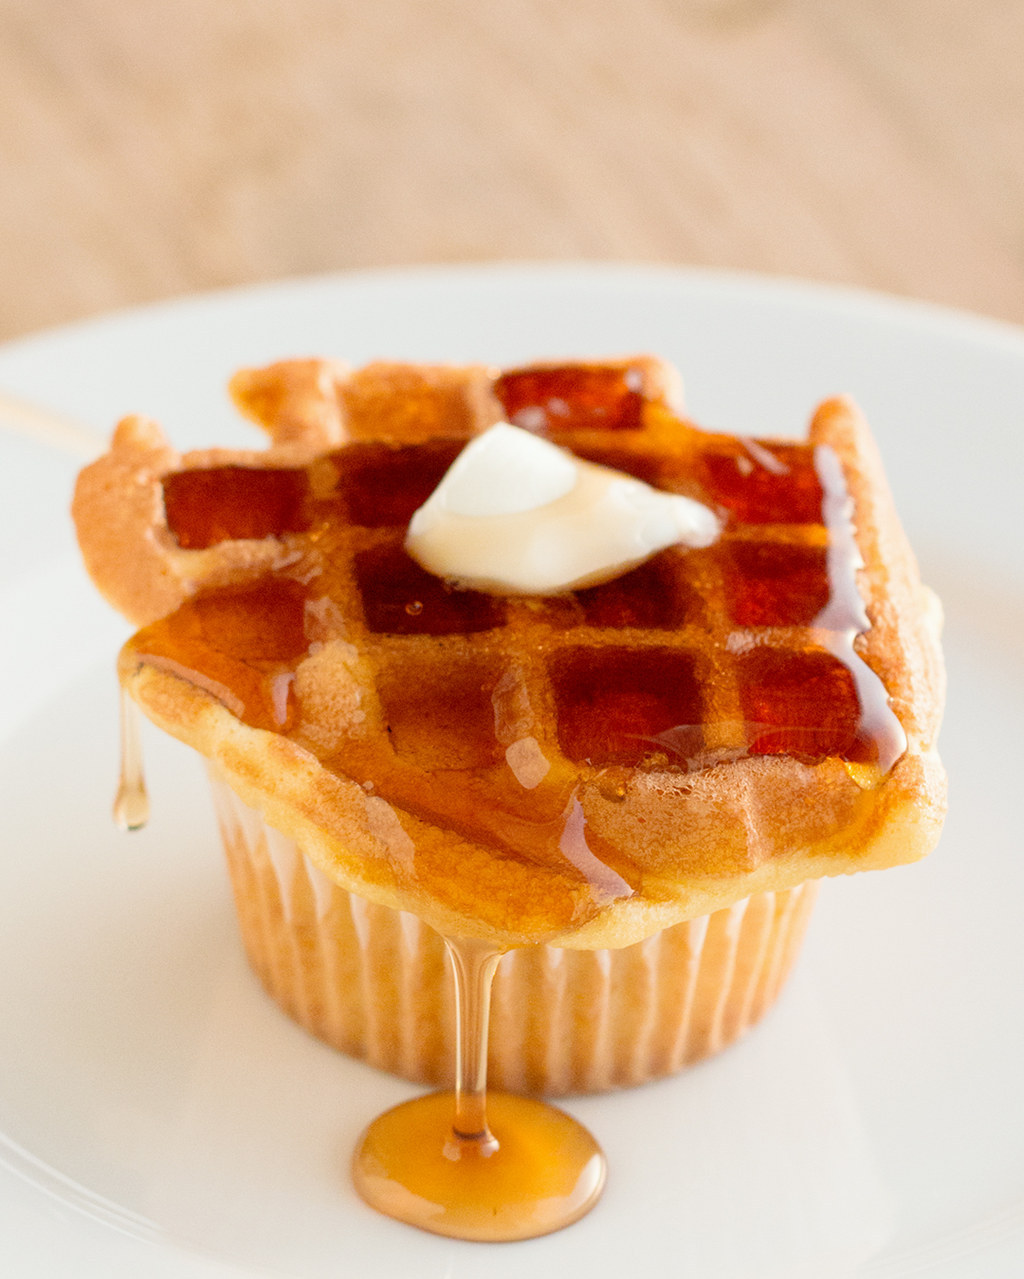 Here's What Waffle Cupcakes Look Like And They Are Just Heavenly